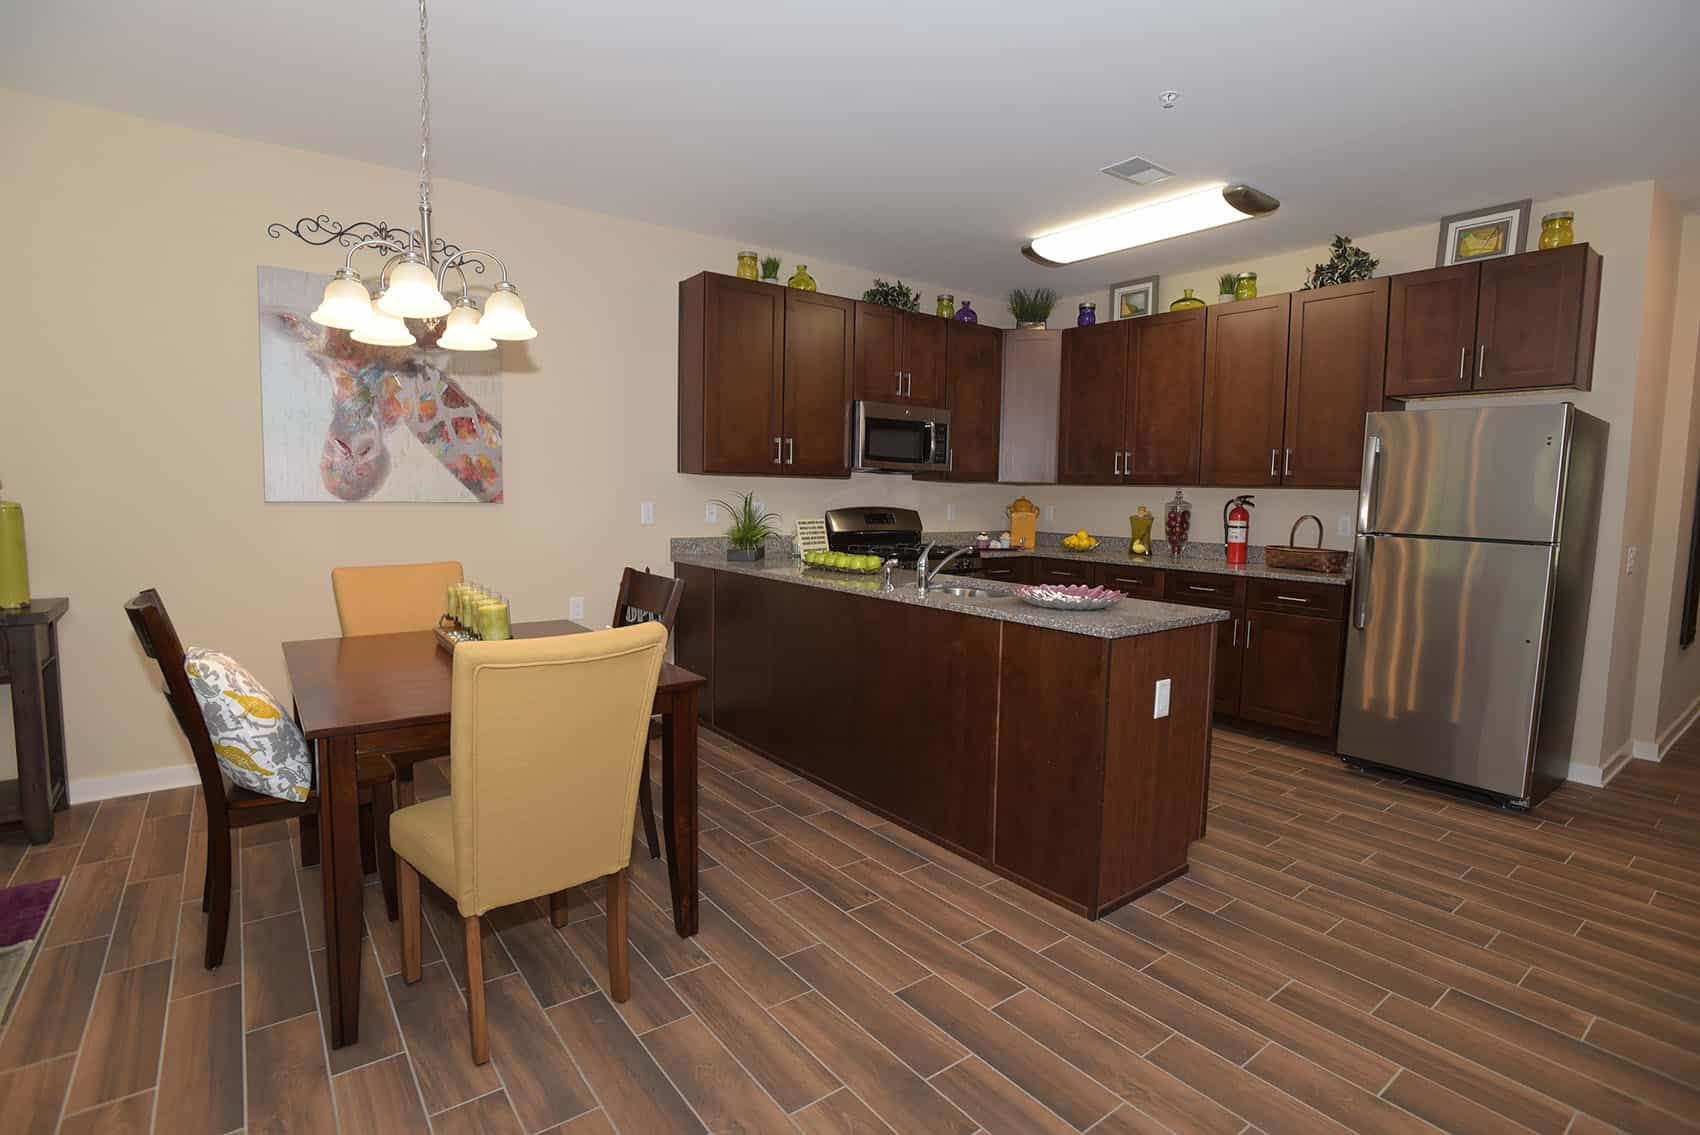 Kitchen and dining area with stainless steel appliances and wooden kitchen table